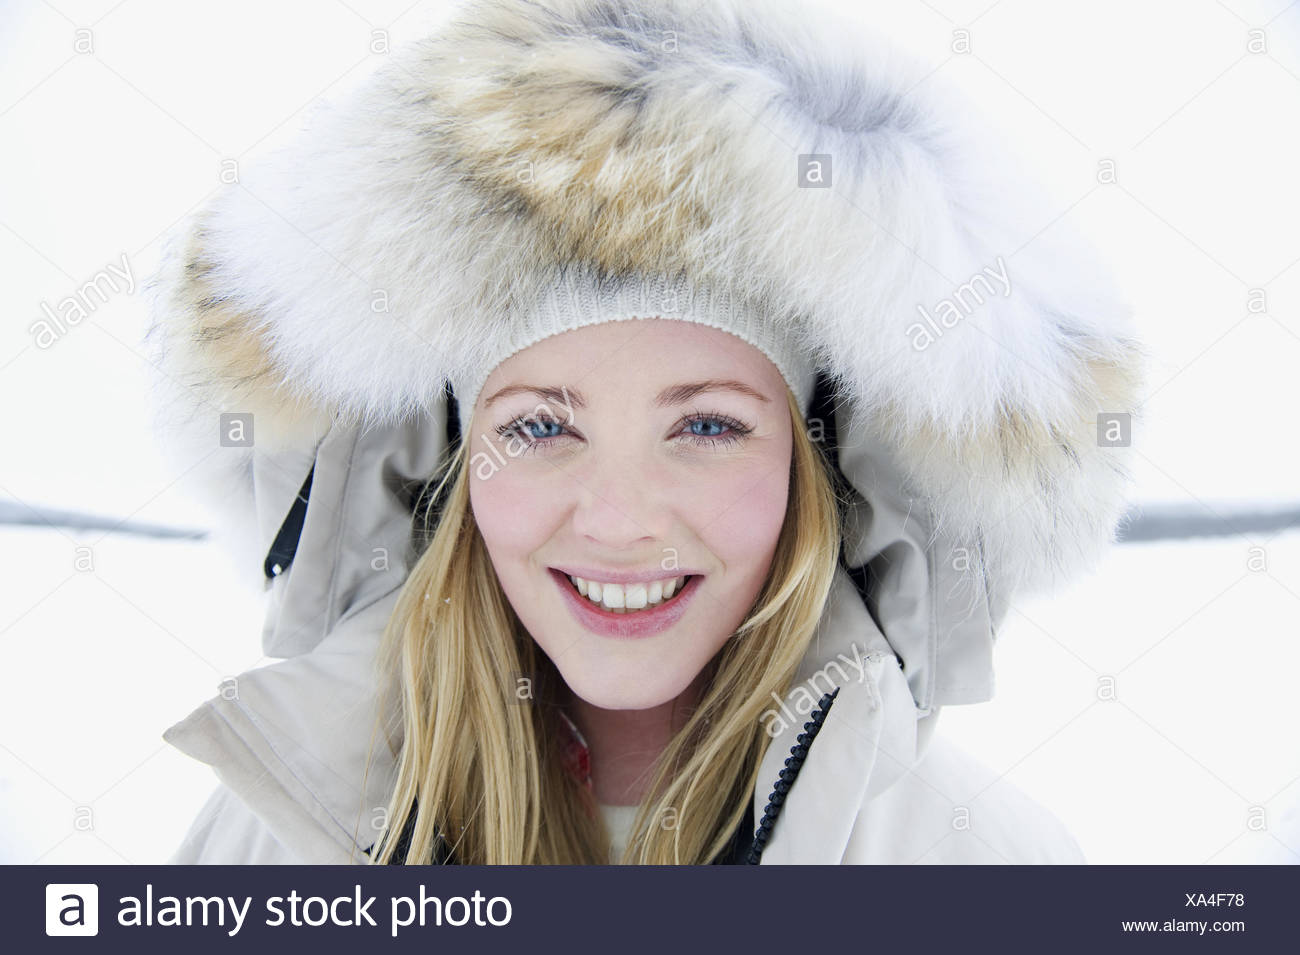 A portrait of a young woman wearing a fur trimmed hooded jacket - Stock Image